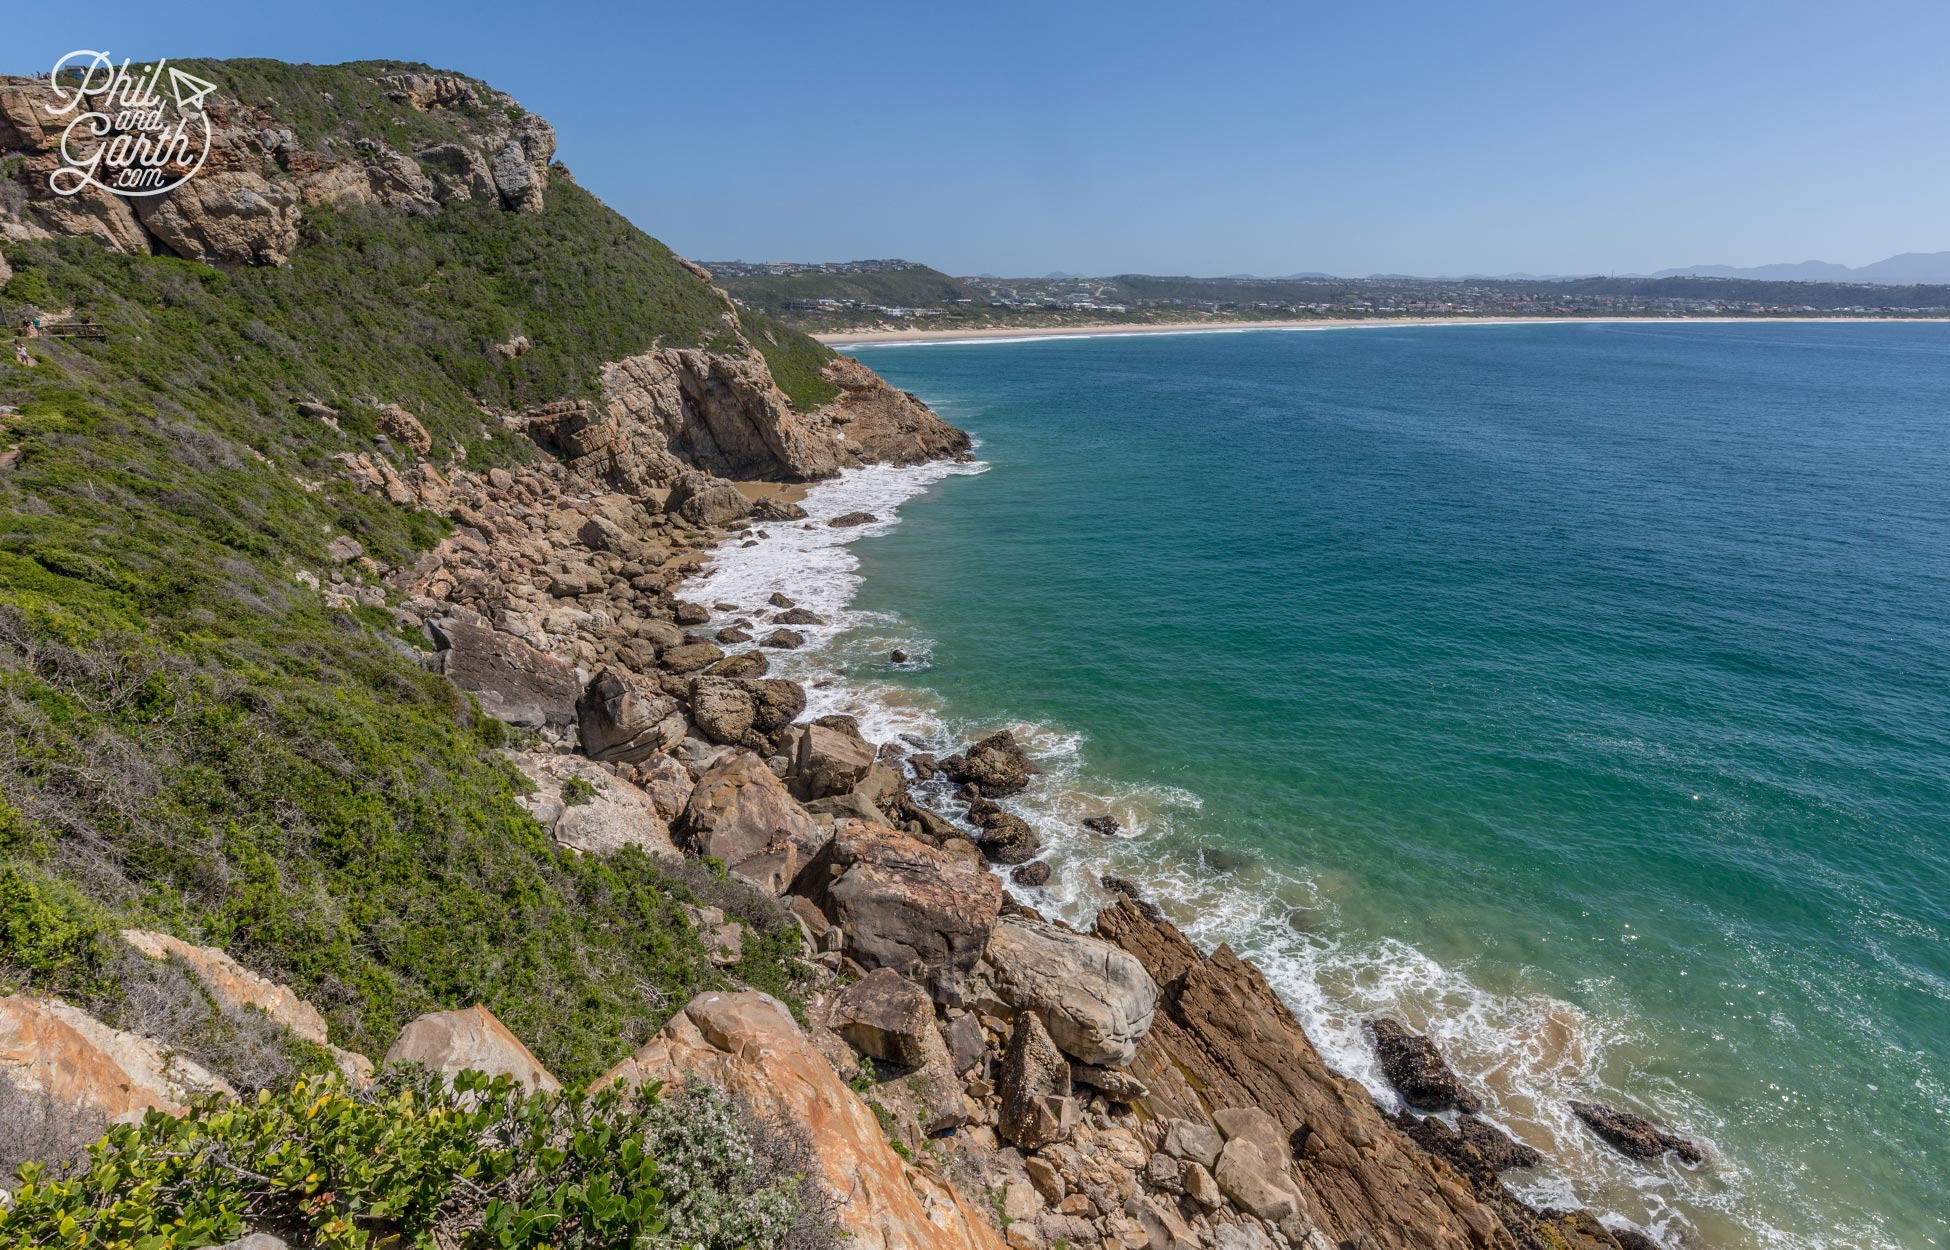 Just one of the many gorgeous views at the Robberg Nature Reserve